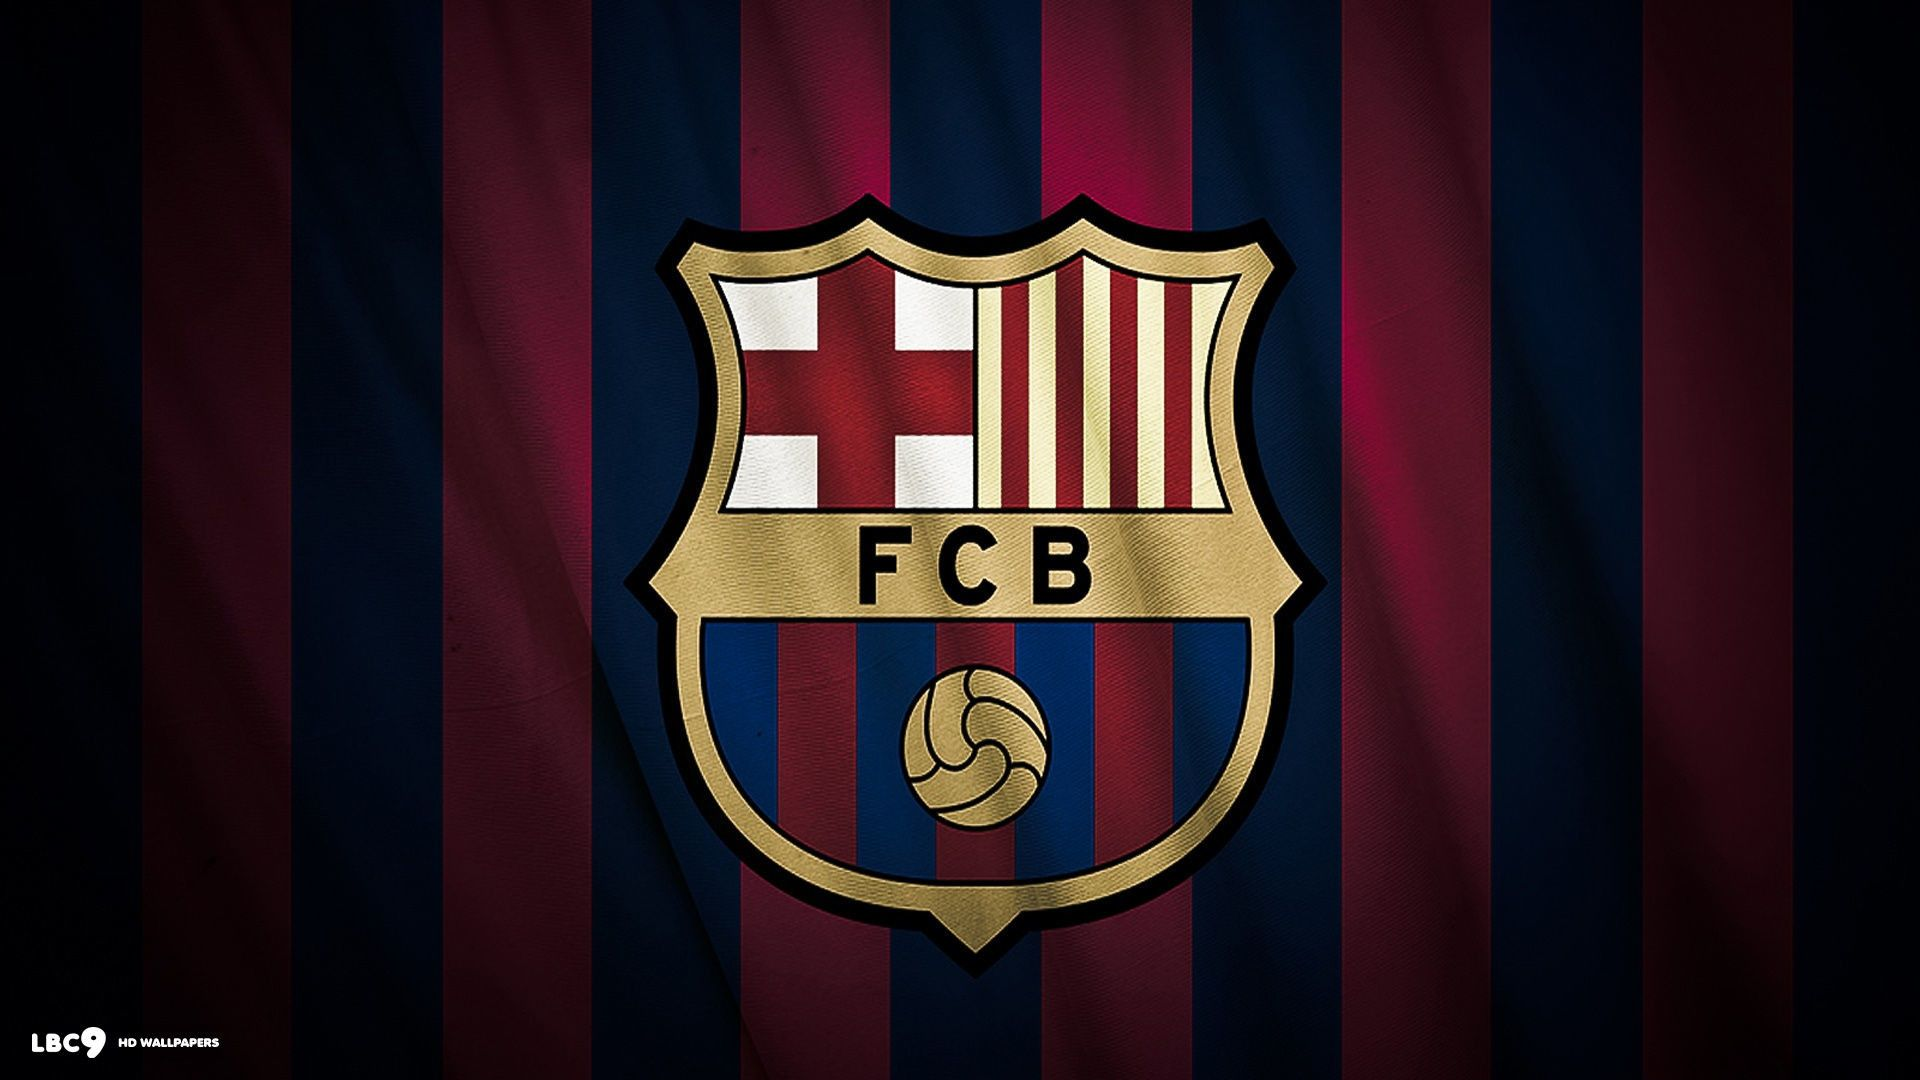 Download Fc Barcelona Wallpaper 2020 4K